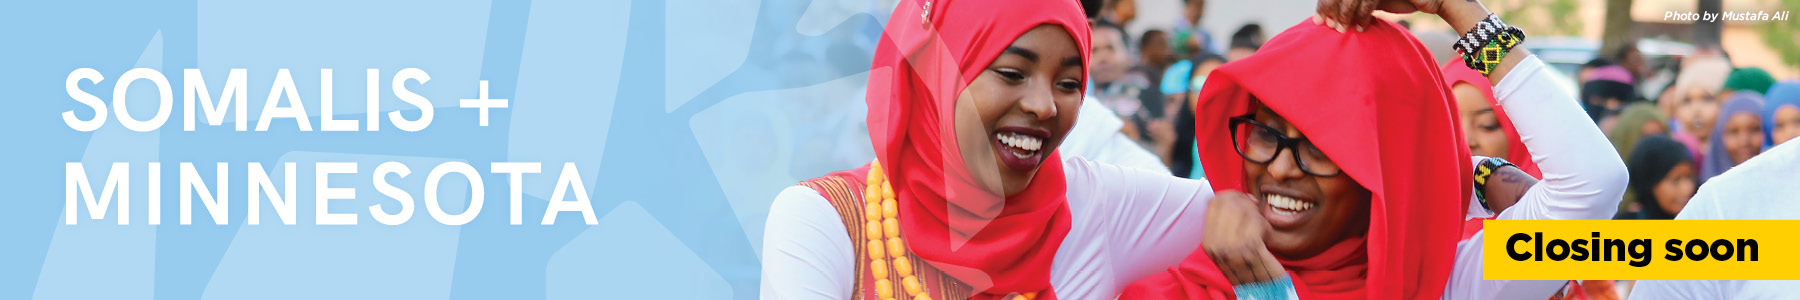 Somalis and Minnesota. Closing soon.